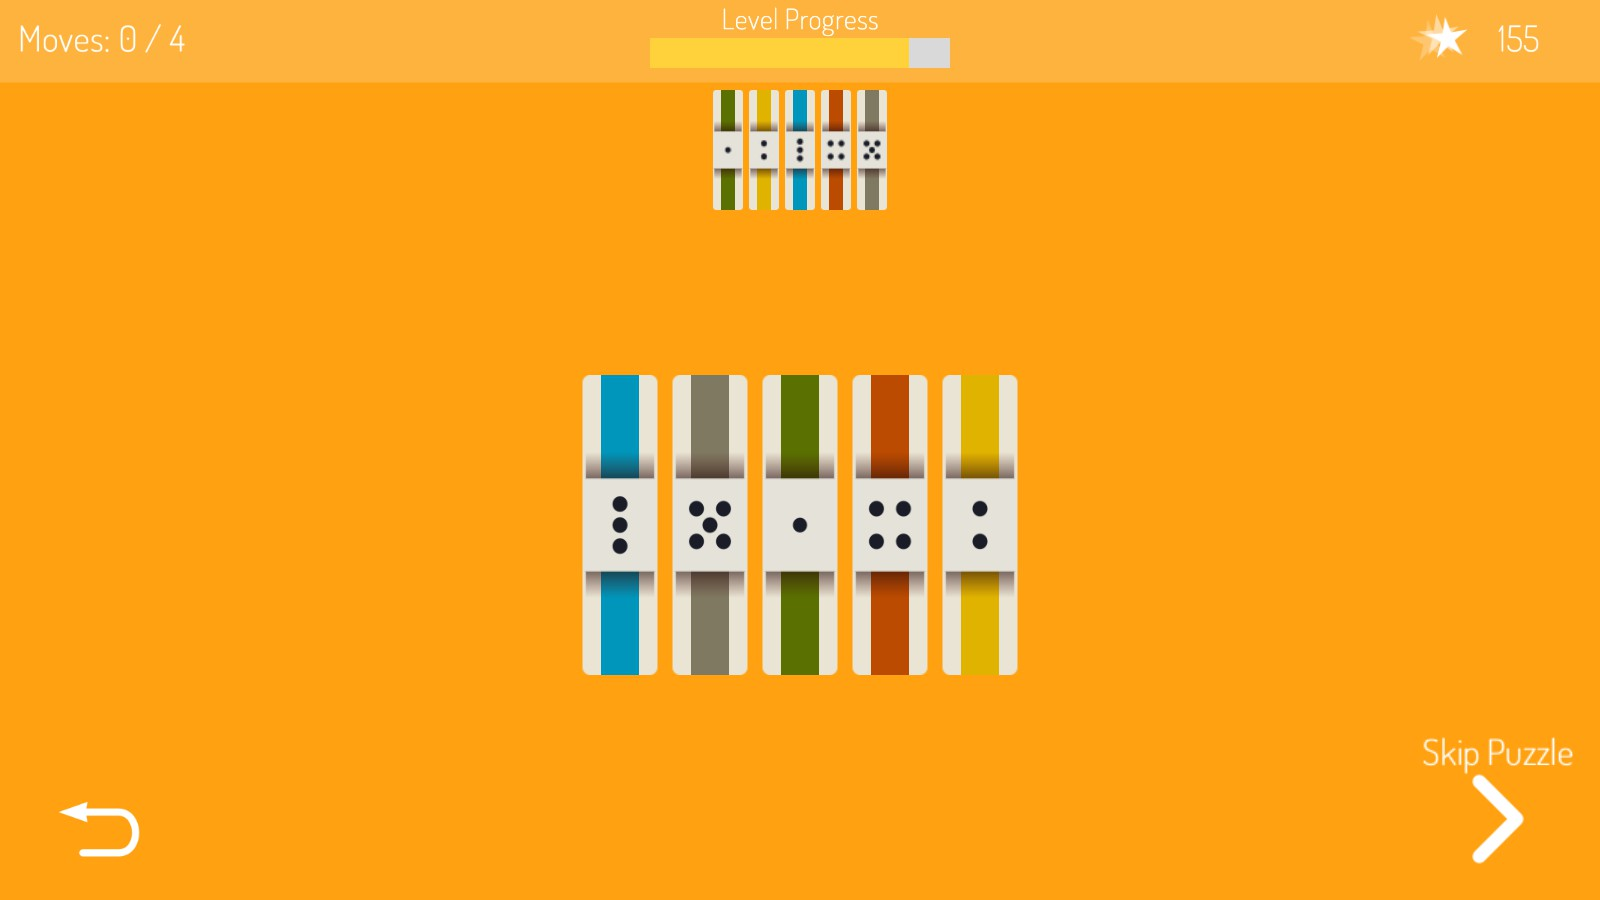 5 piece puzzle with minimum 4 moves, uses symmetrical pieces and contrasting colors